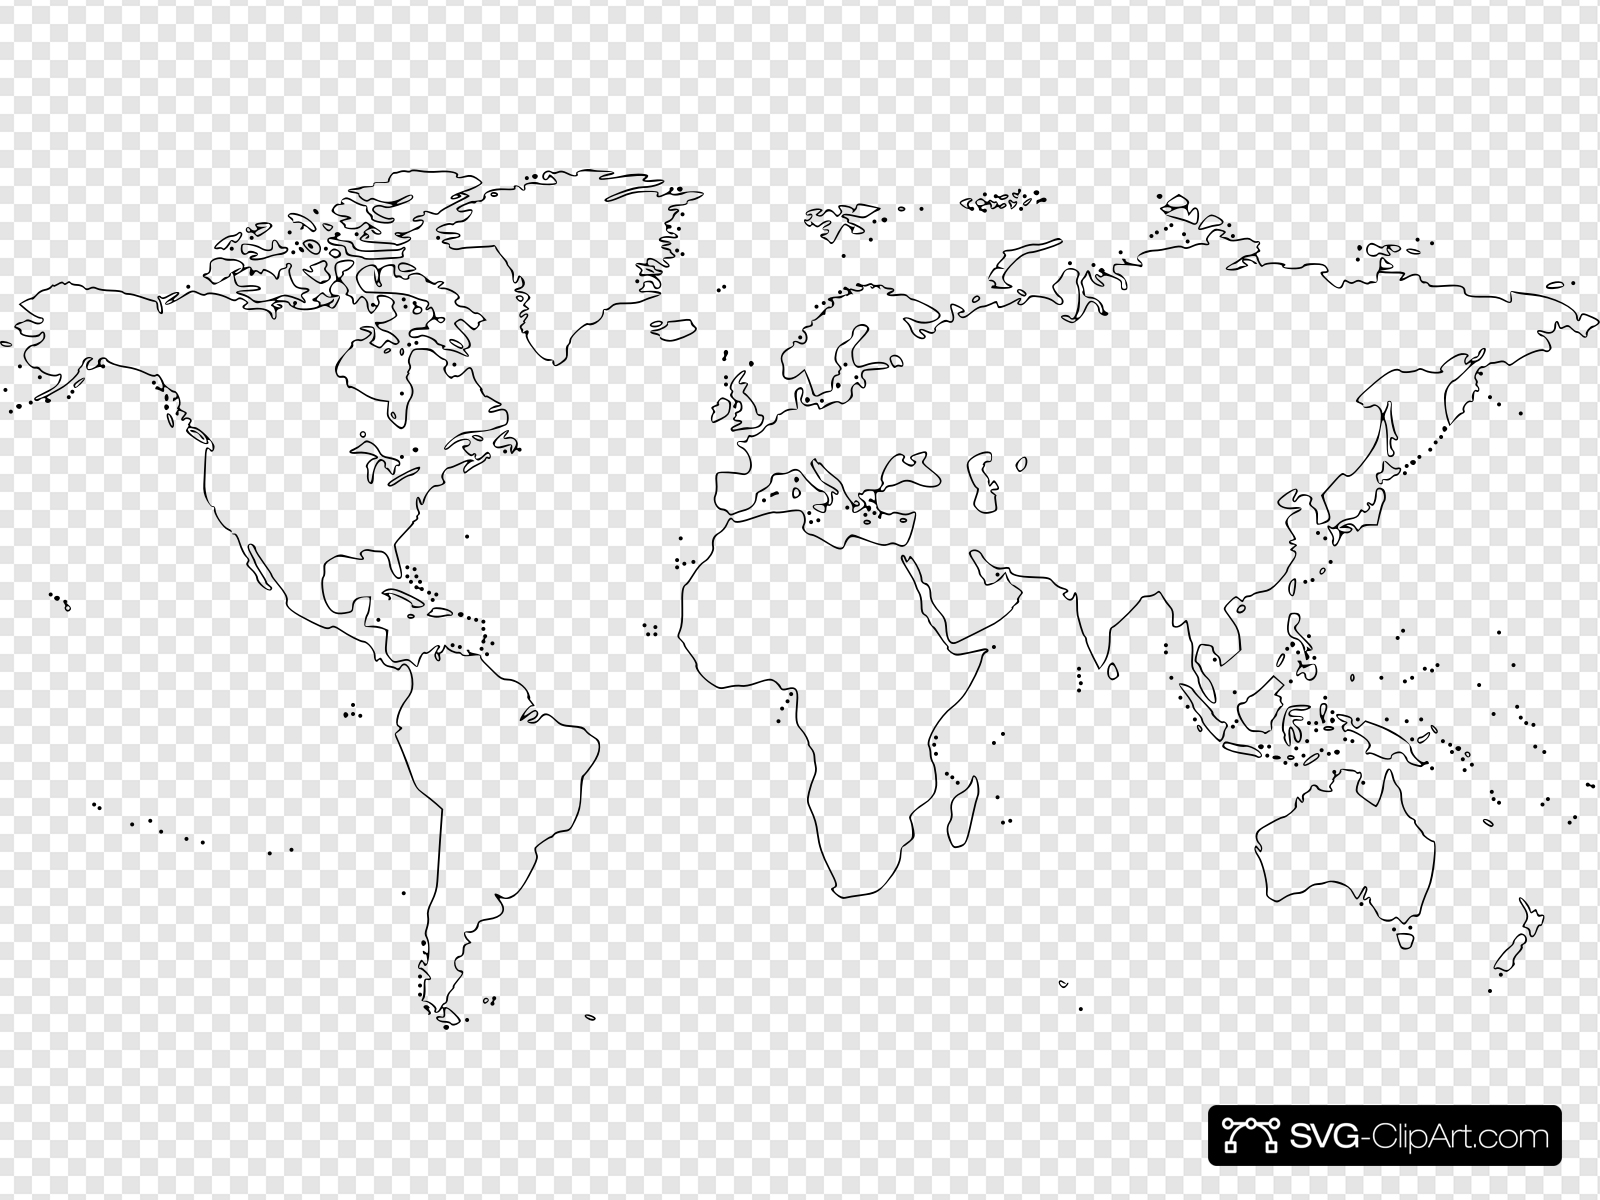 Blank World Map (large) Clip art, Icon and SVG.